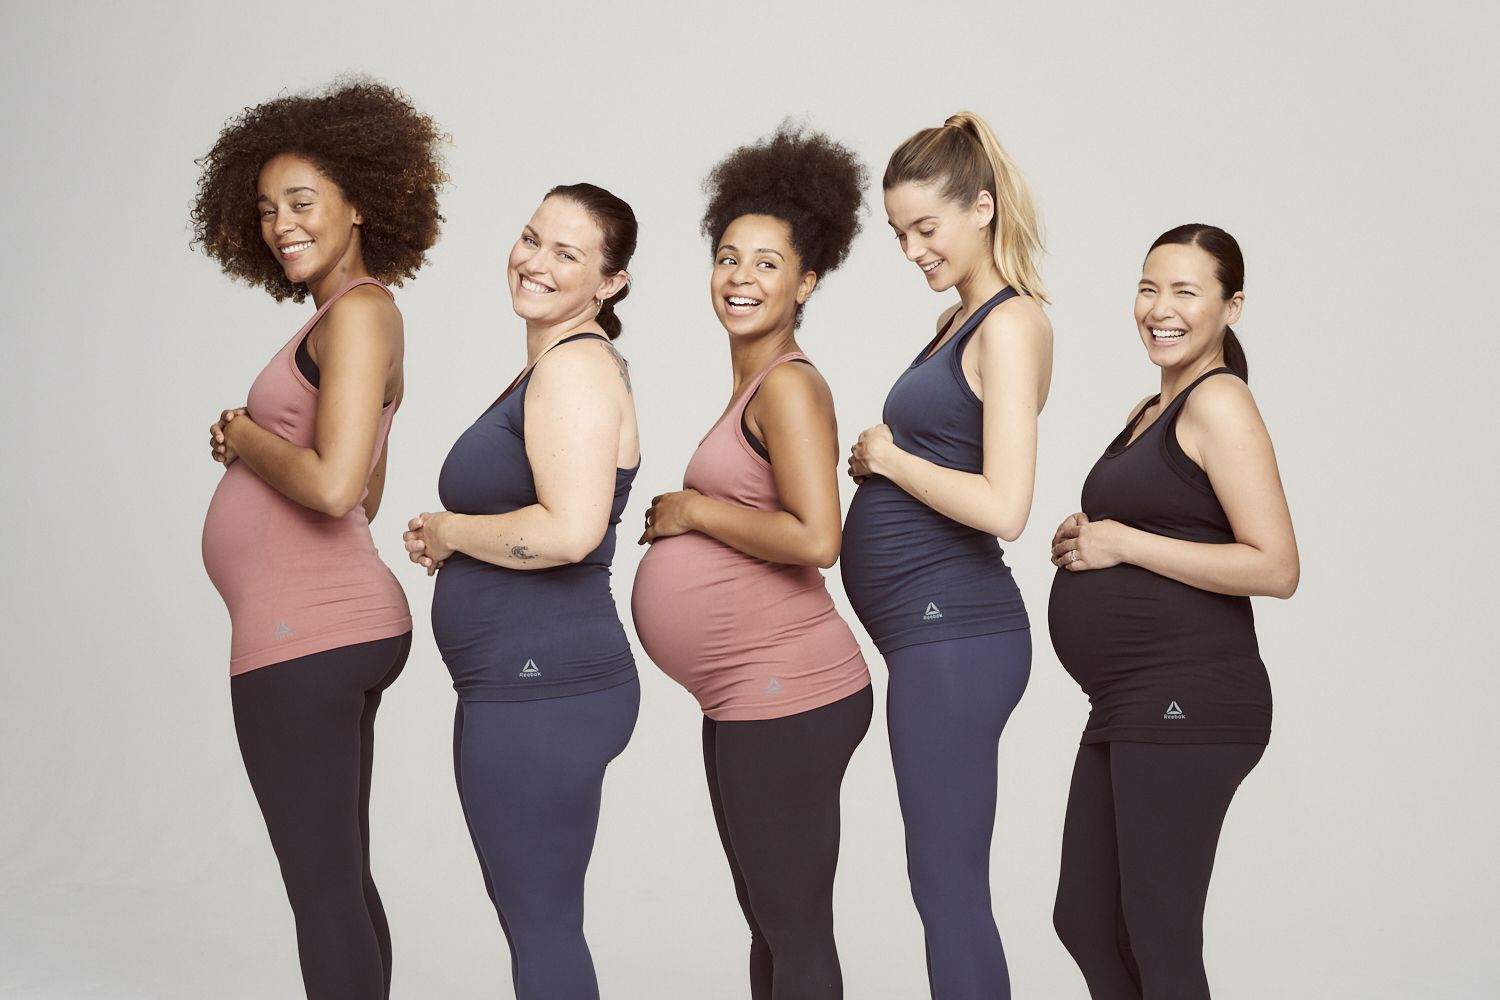 Just in - Reebok Launches New Maternity Activewear Collection